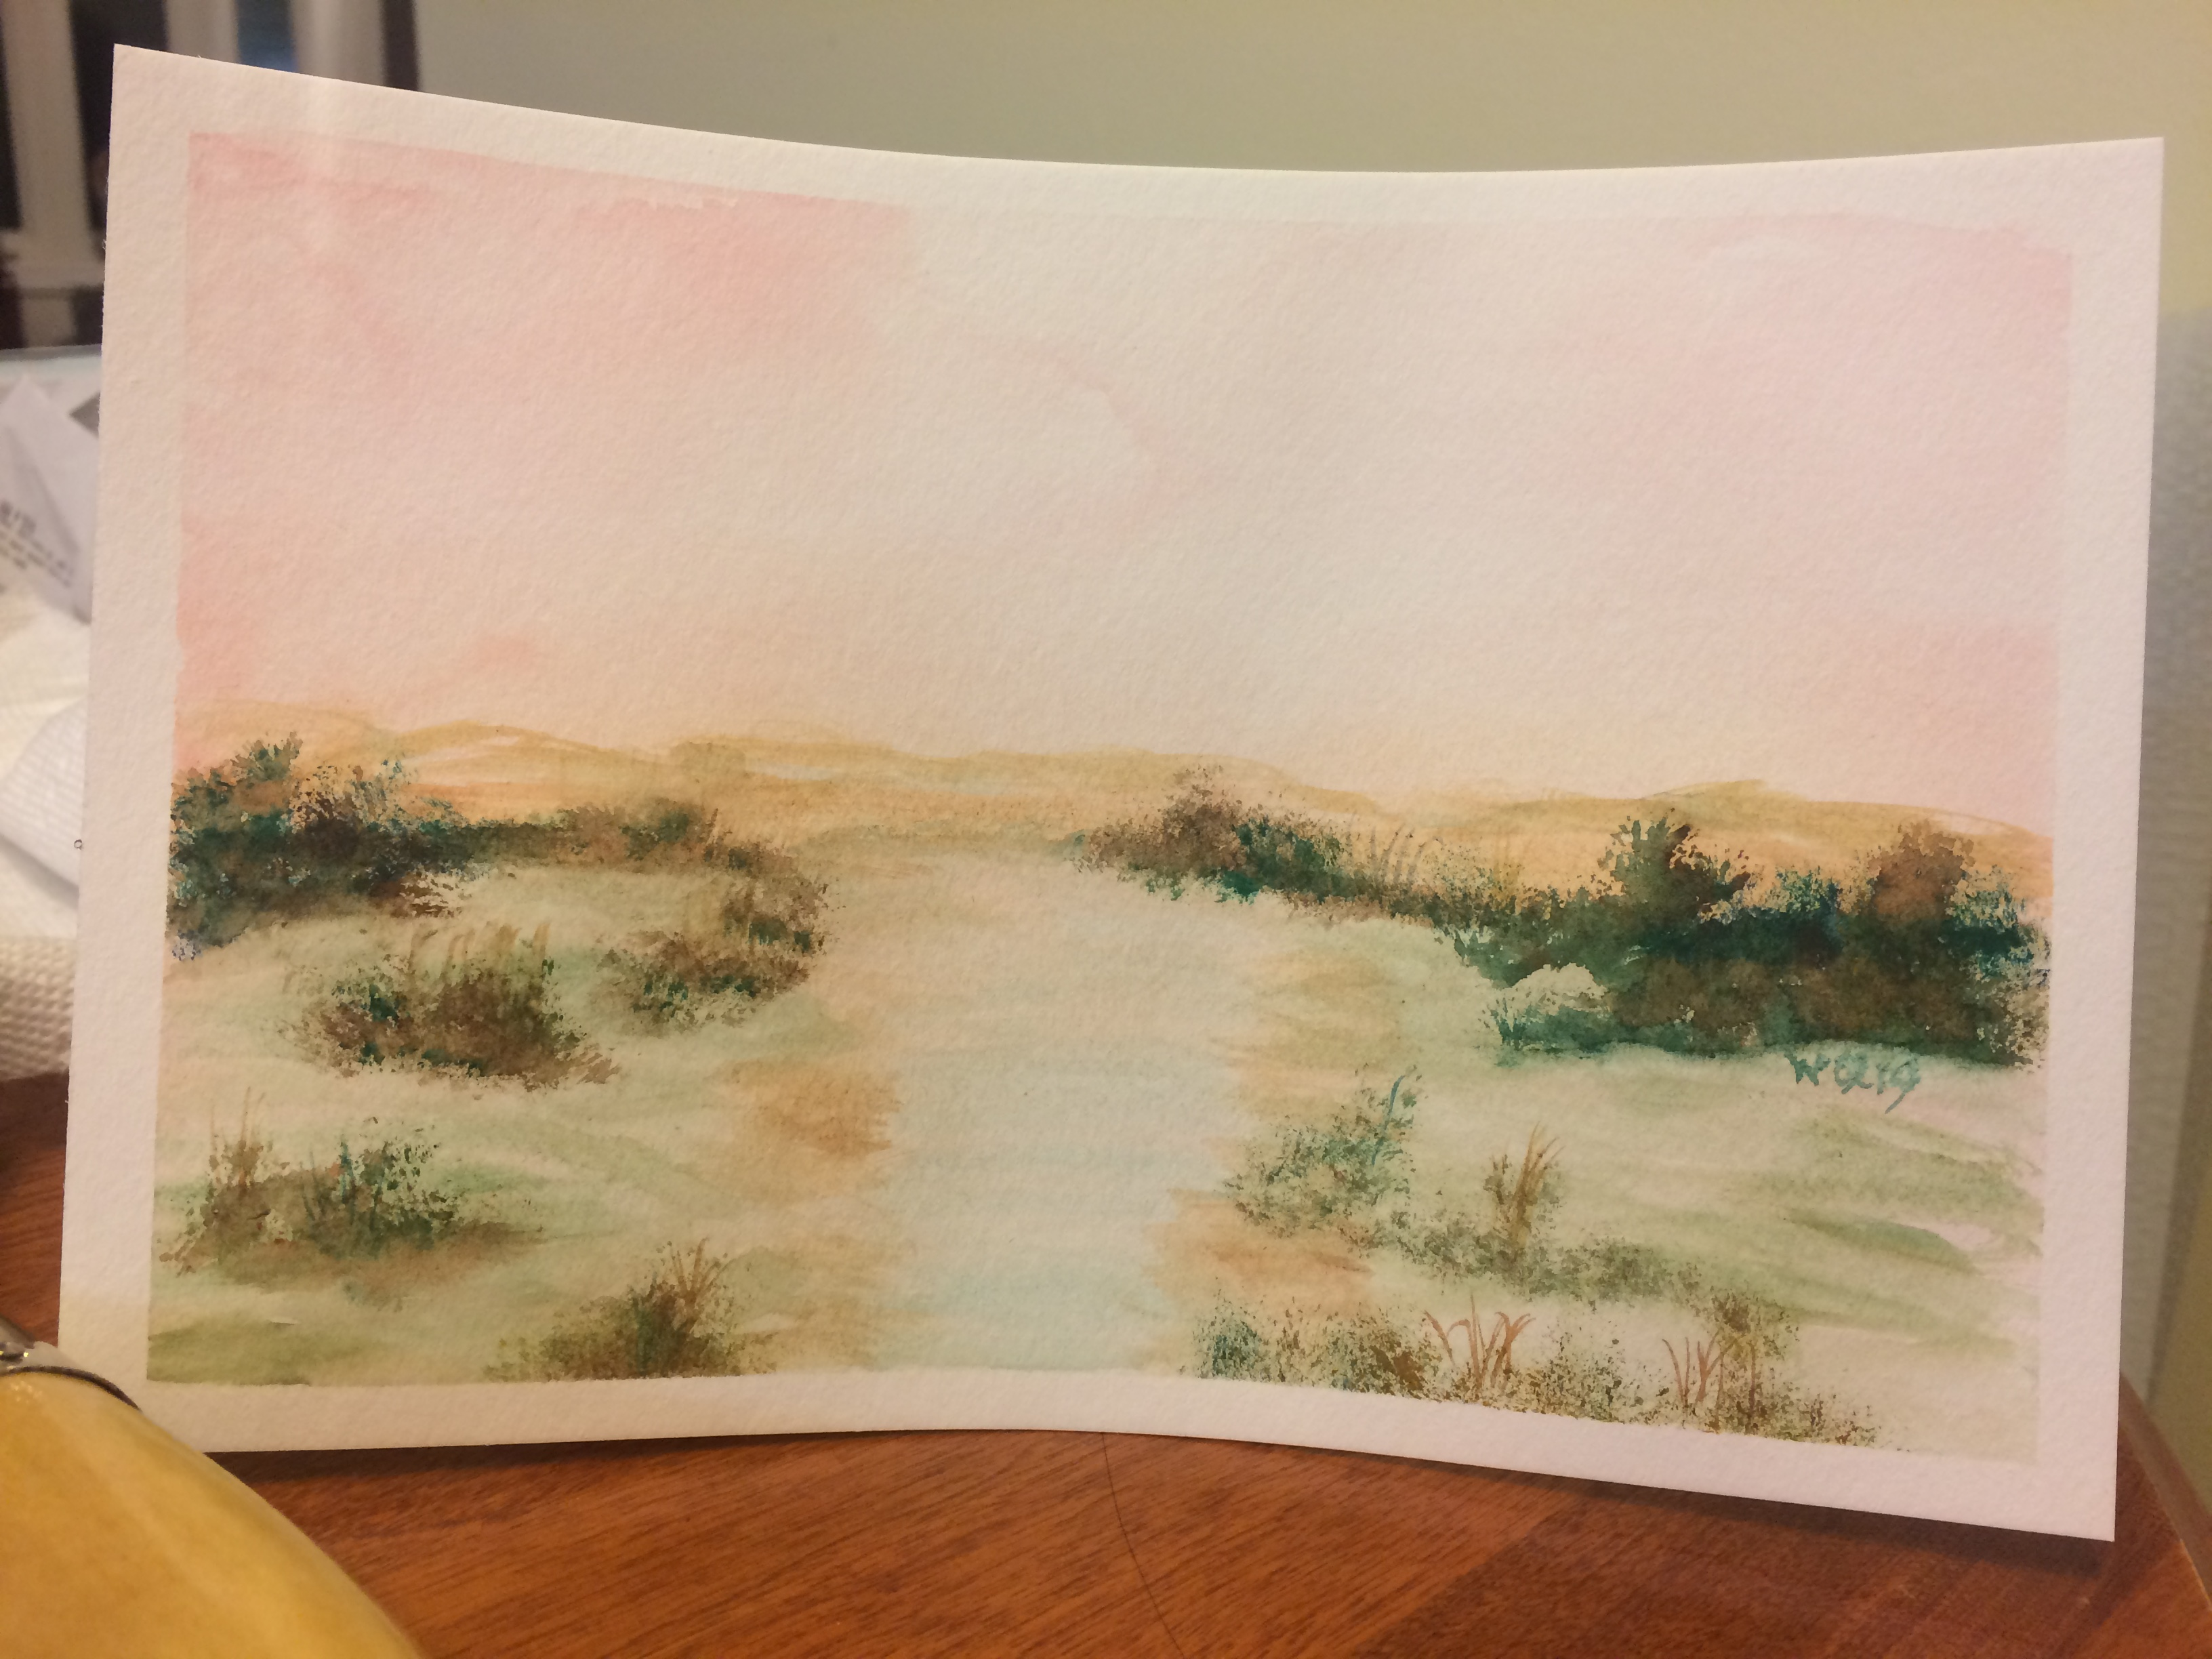 watercolour landscape of a pink sky, small river or stream with highlights from the sky, small bushes.